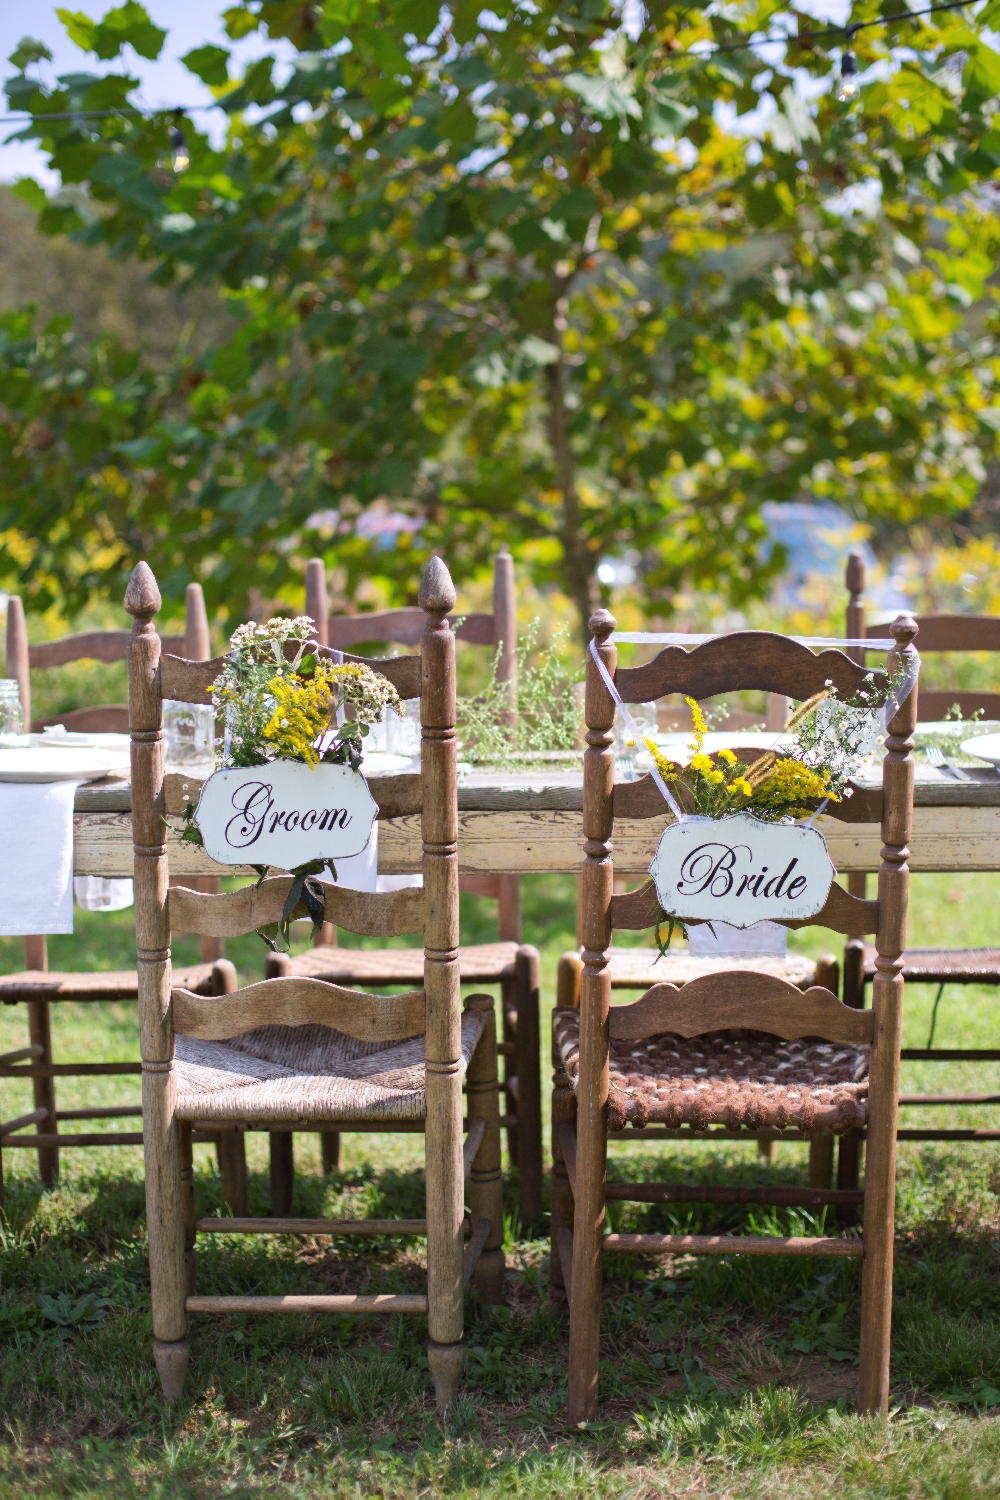 bride and groom chairs.jpg